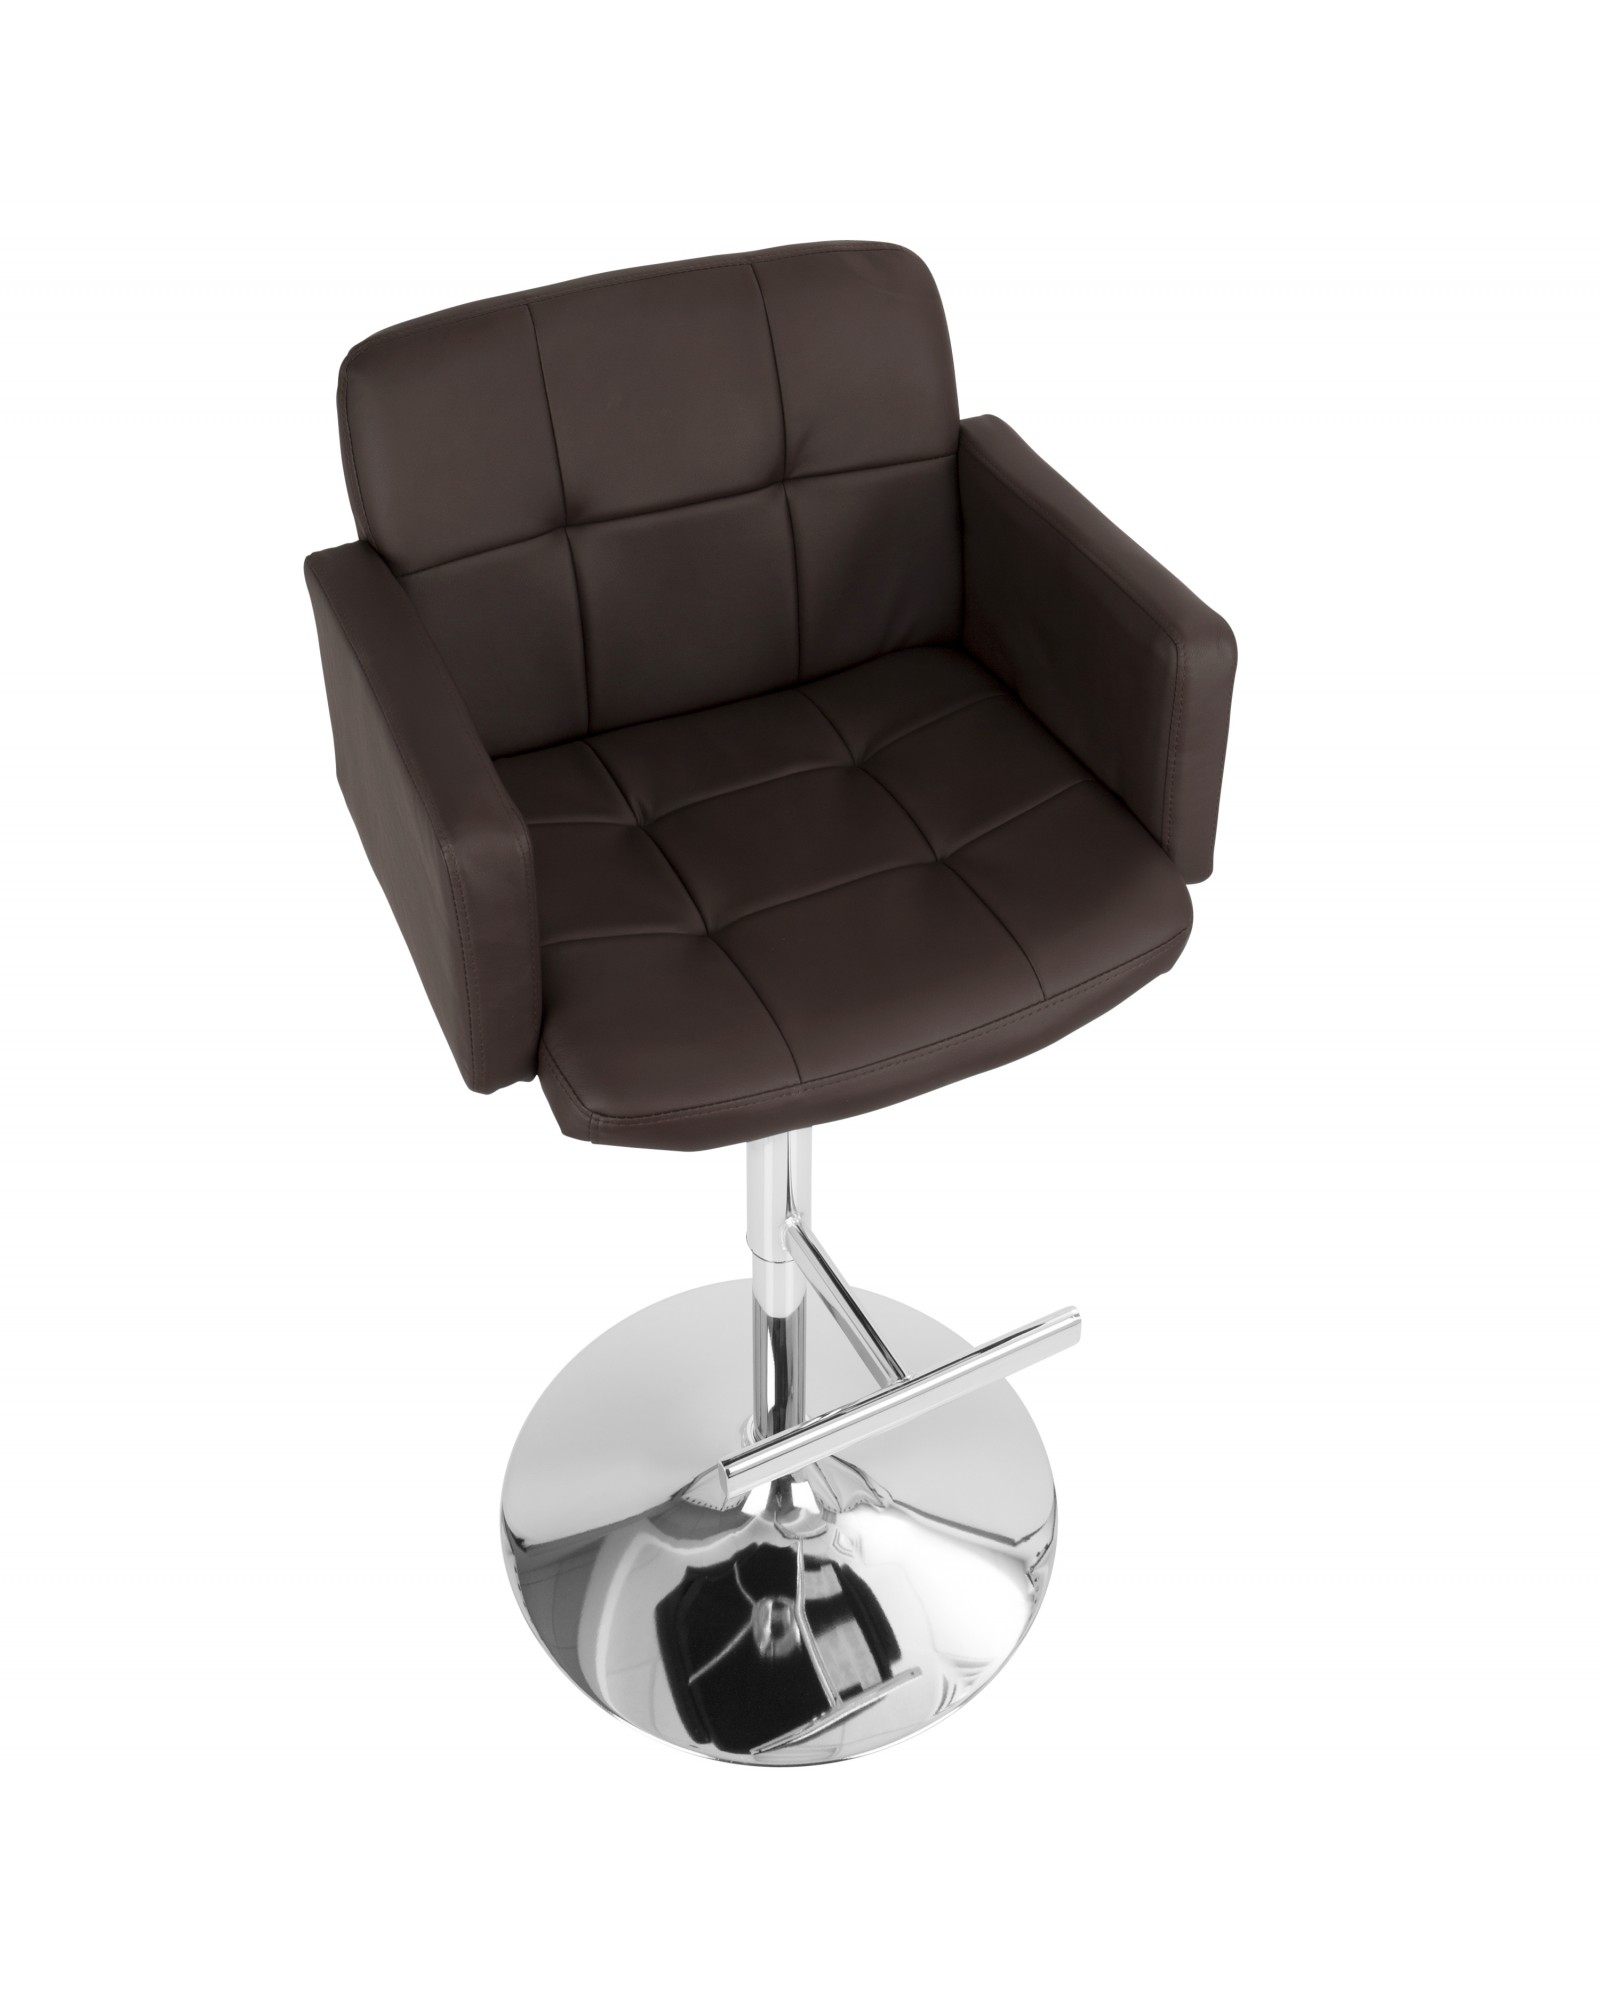 Stout Contemporary Adjustable Barstool with Swivel and Brown Faux Leather